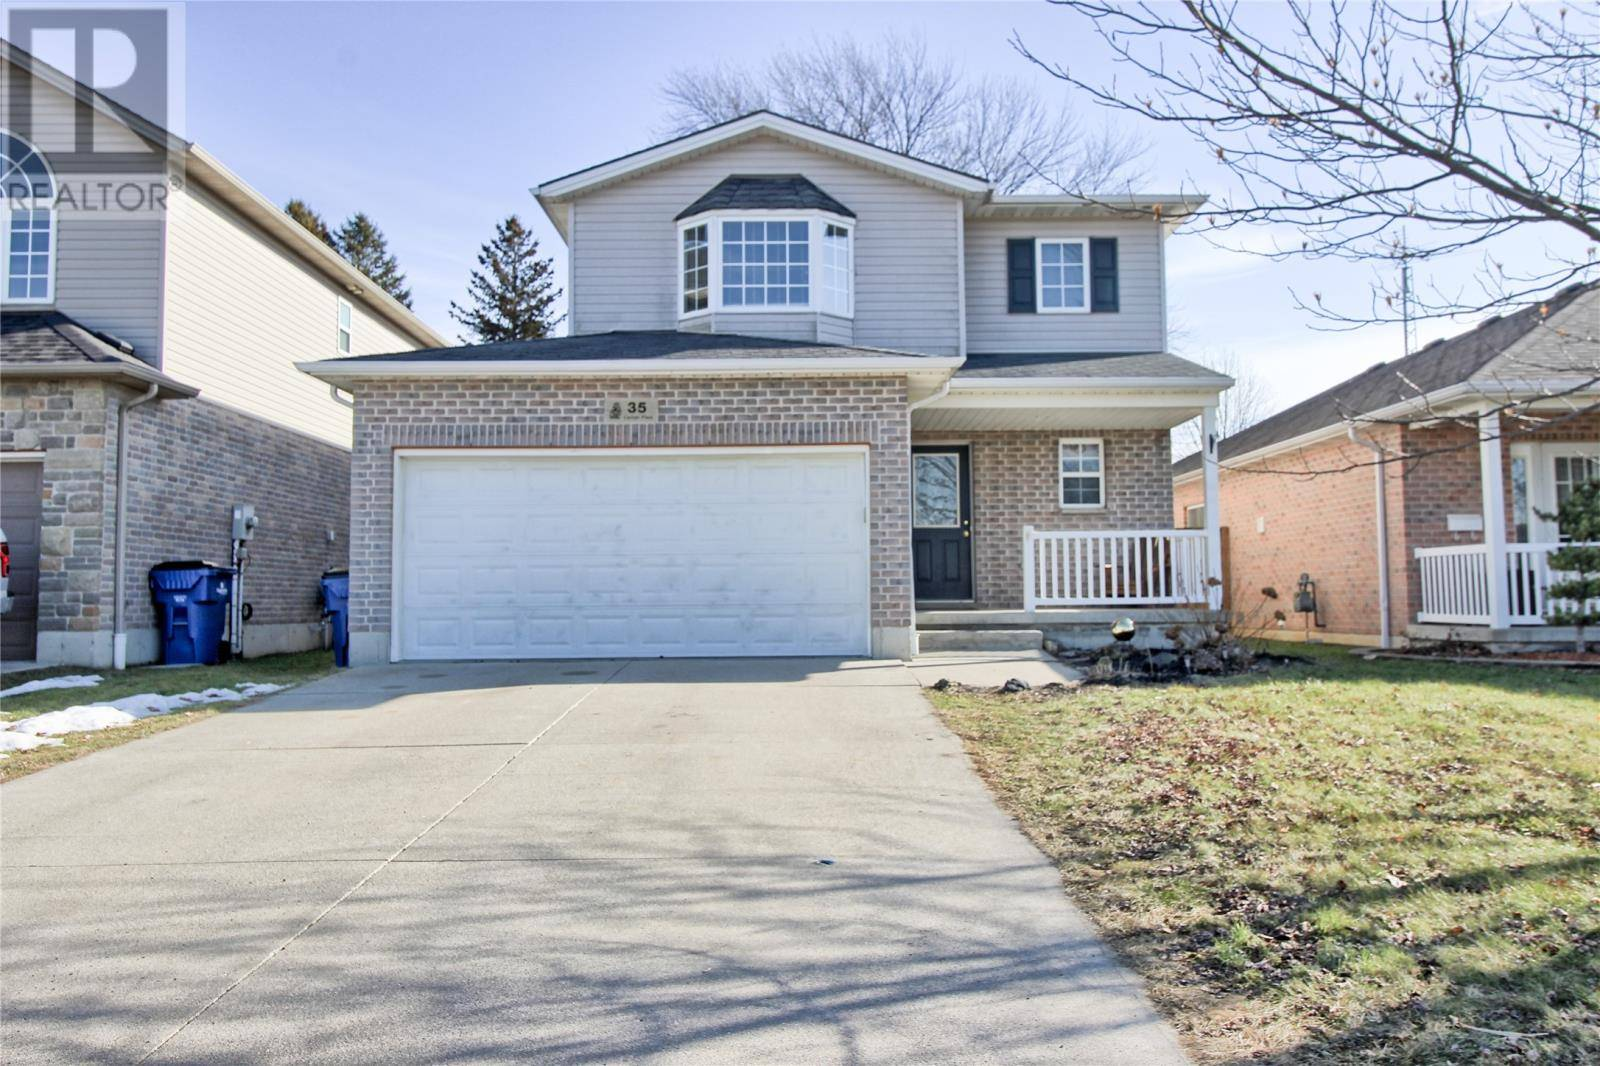 House for sale at 35 Cartier Place Pl Chatham Ontario - MLS: 20001329